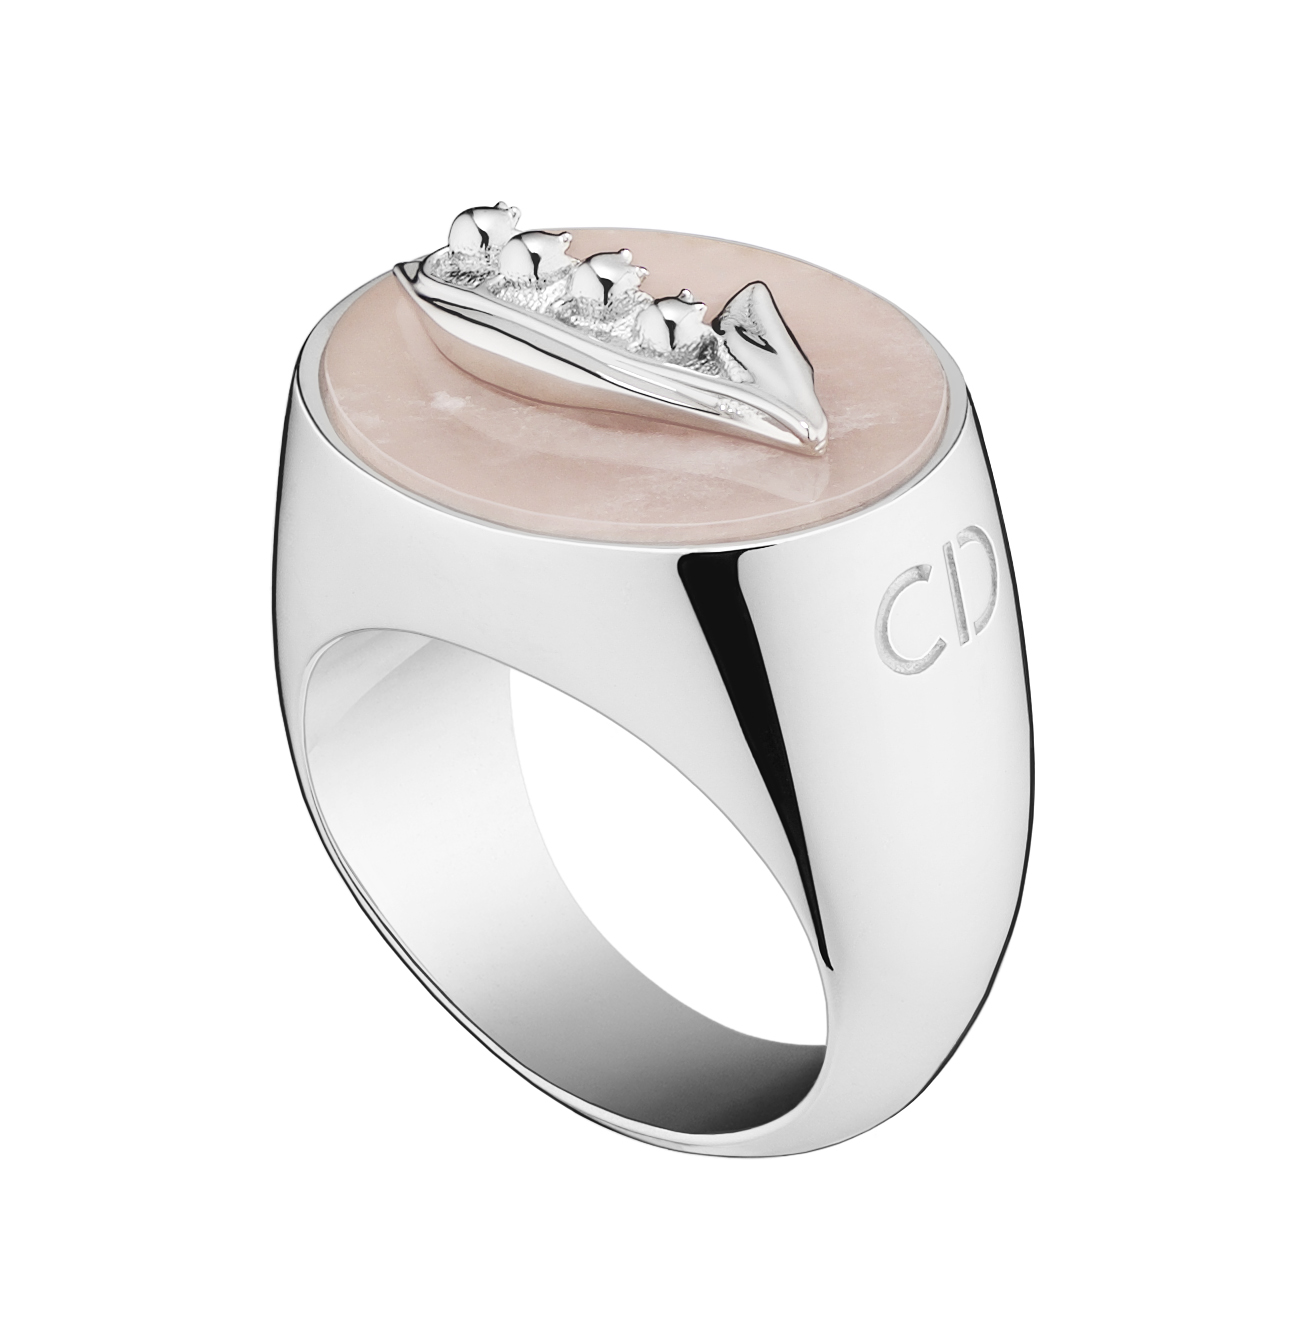 Lucky-Dior-Lily-Of-The-Valley-pattern-ring-in-metal-with-rhodium-finish-and-pink-quartz